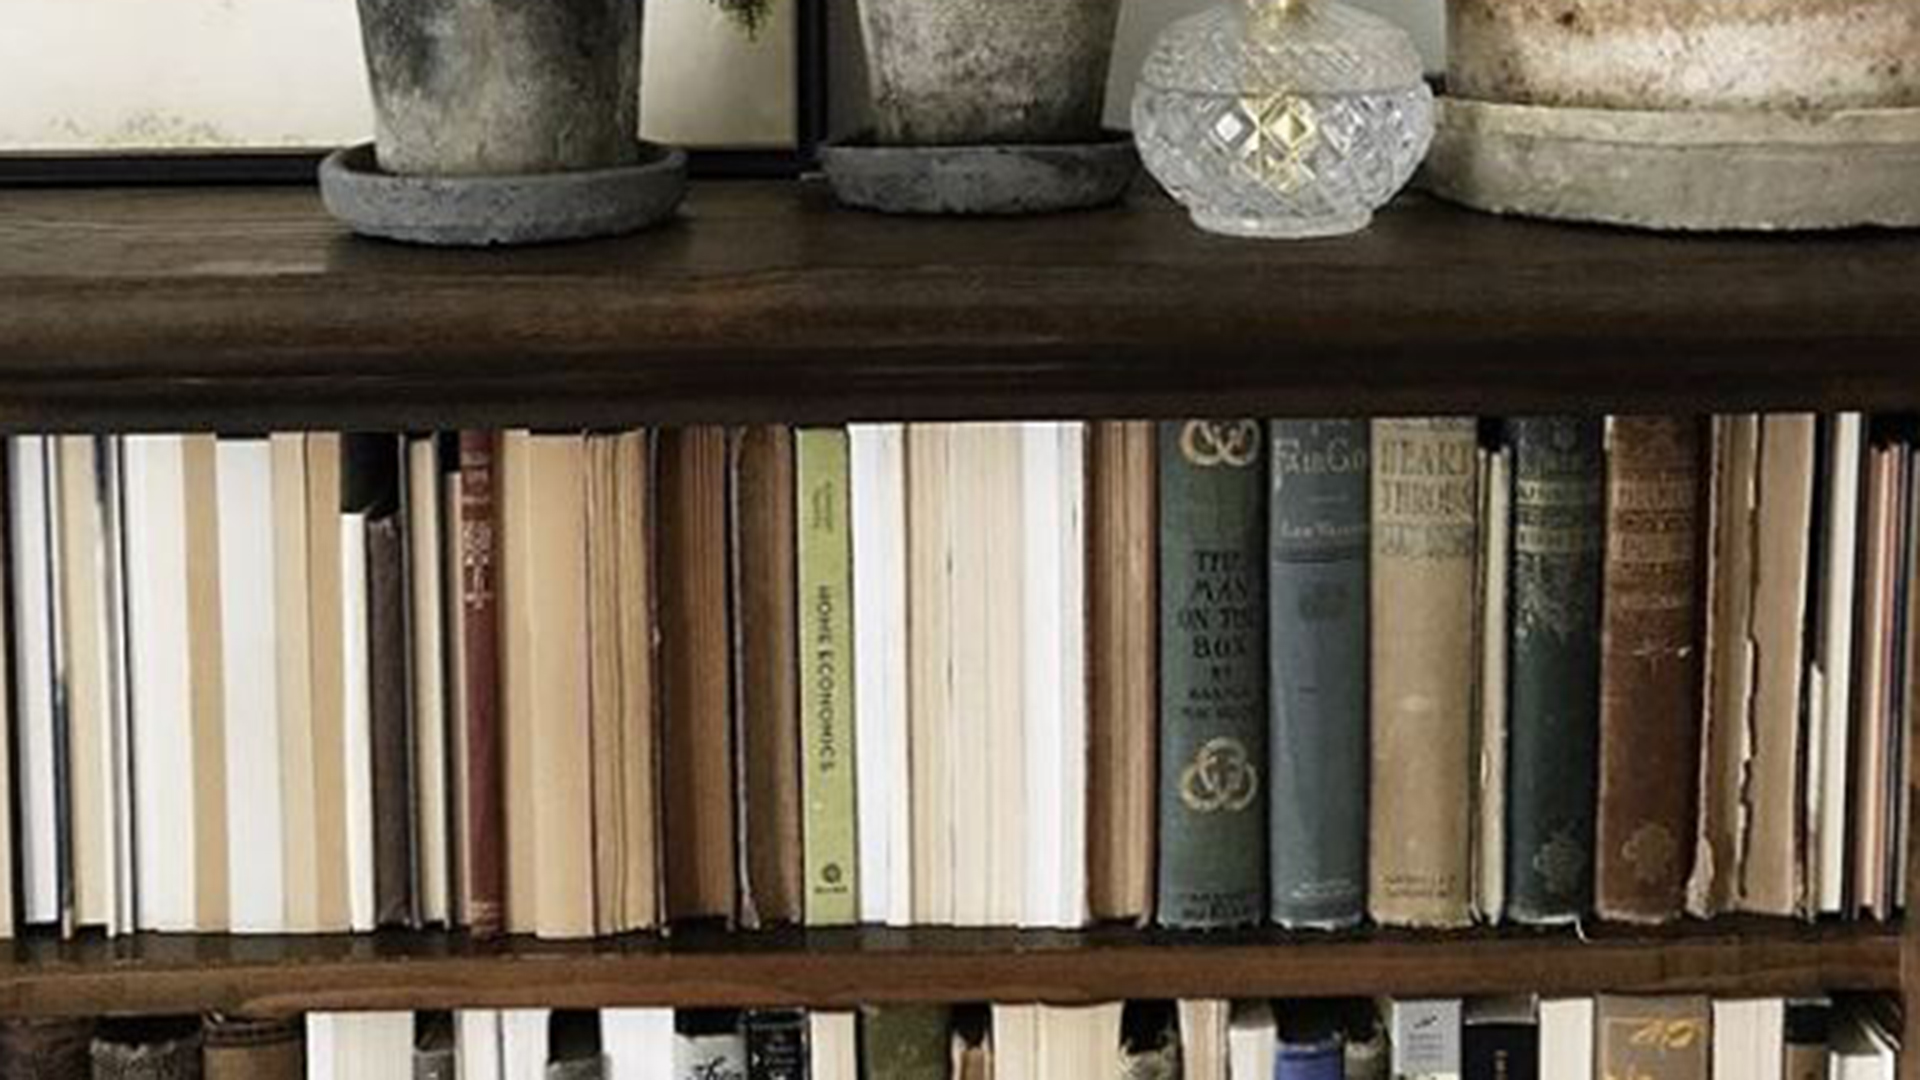 Backward Books On Shelves Is A Controversial Home Decor